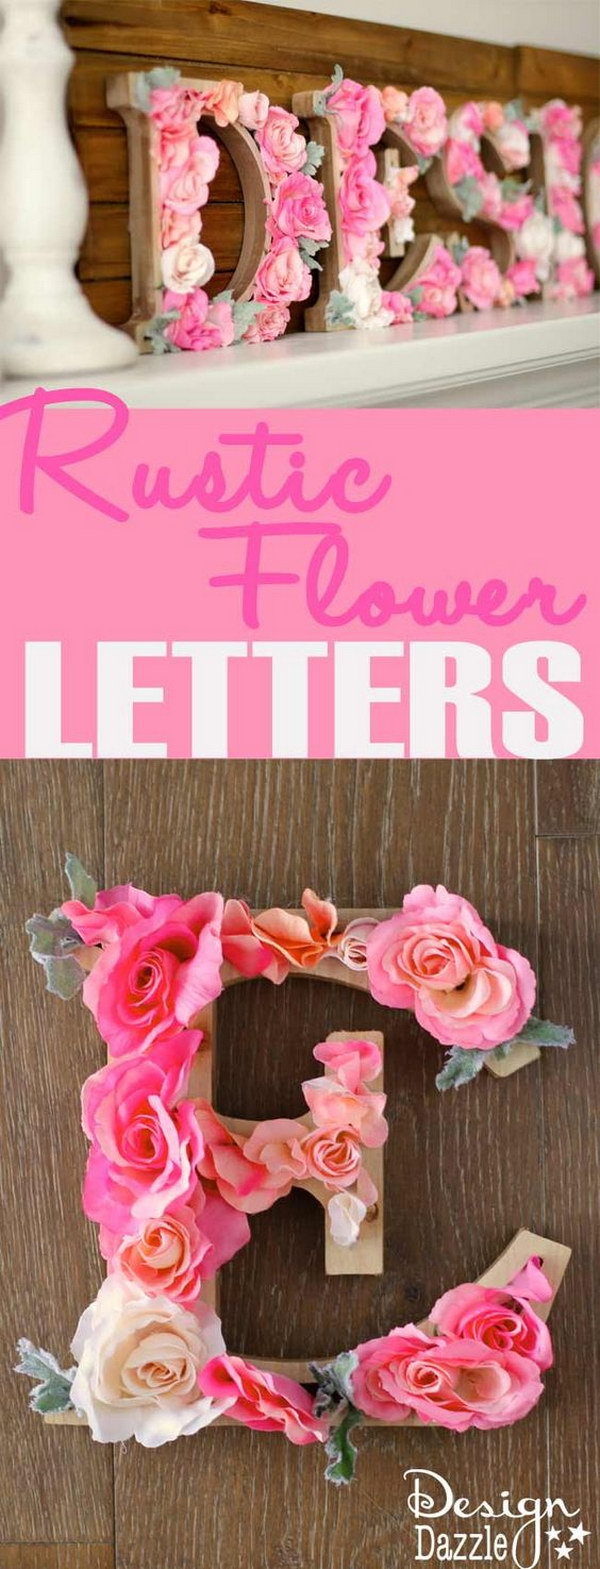 Rustic Flower Letters Tutorial